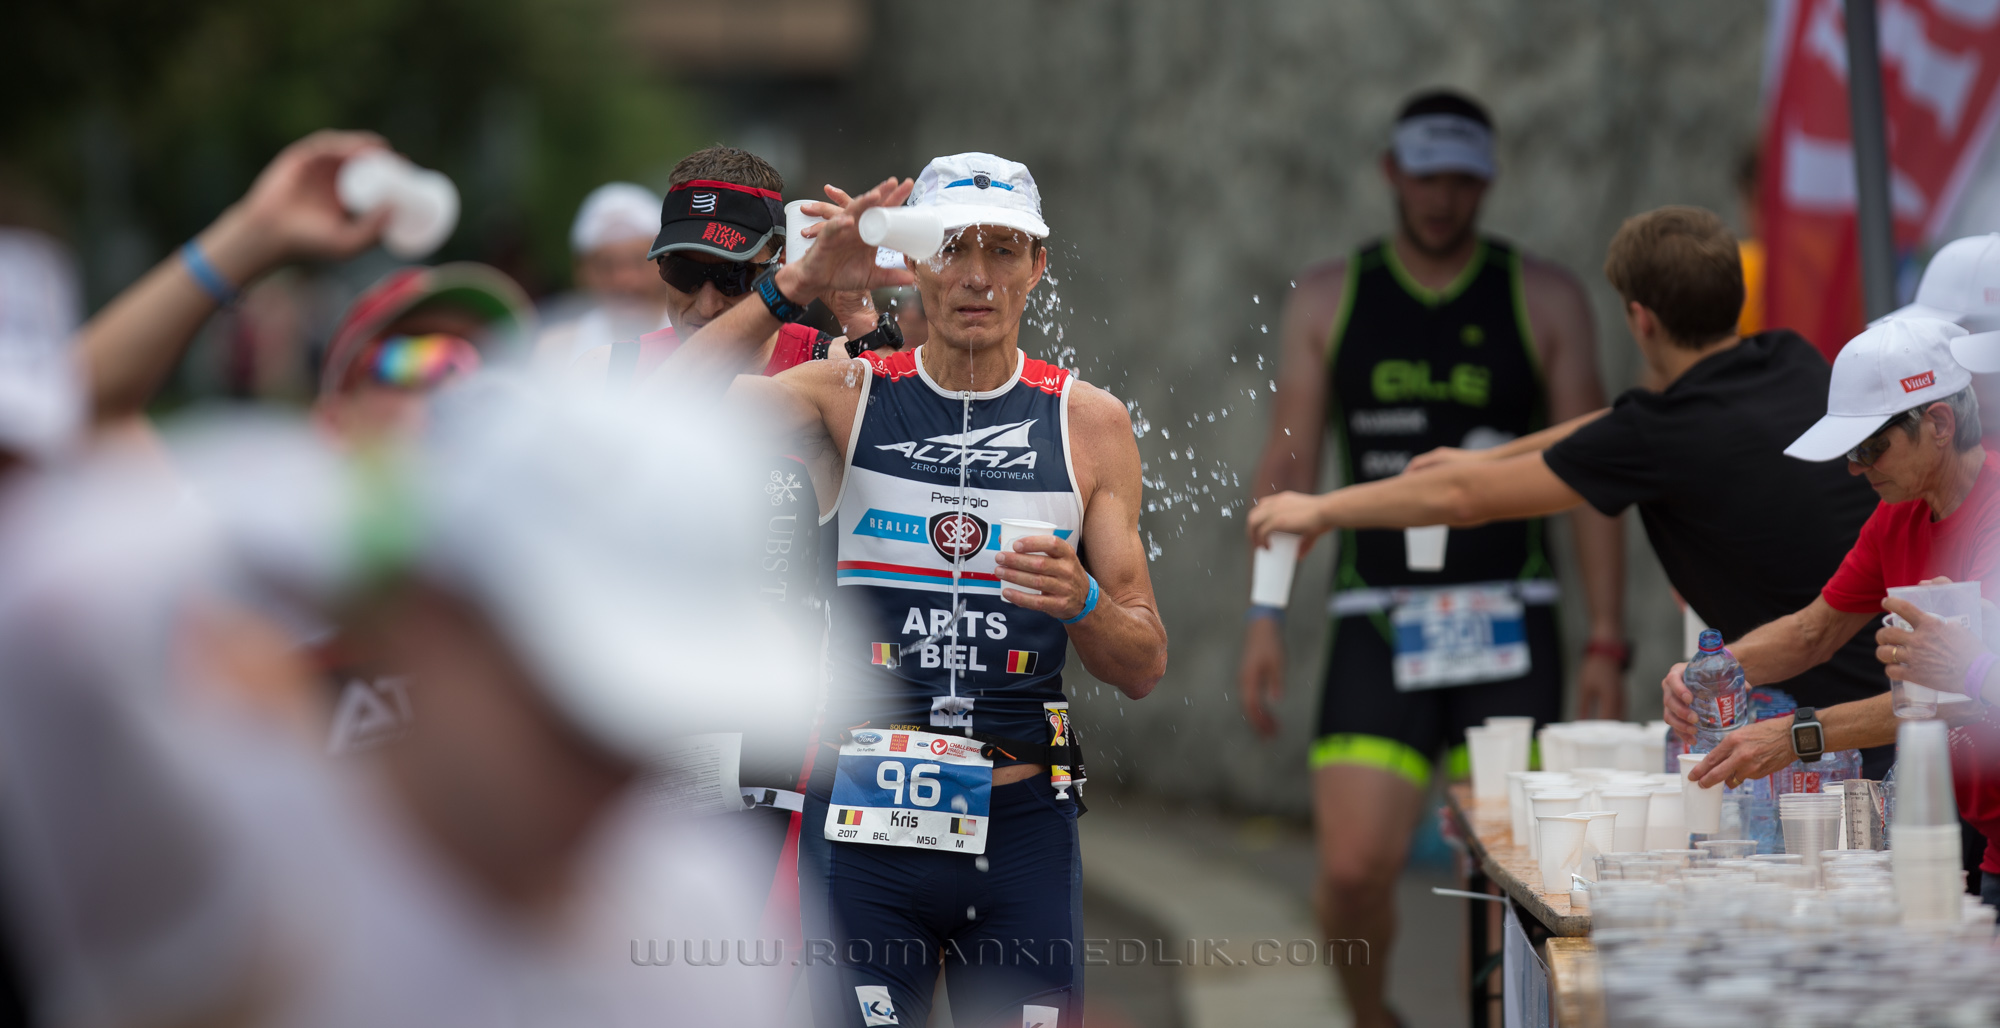 Ford_challenge_Prague_Triathlon_2017-28